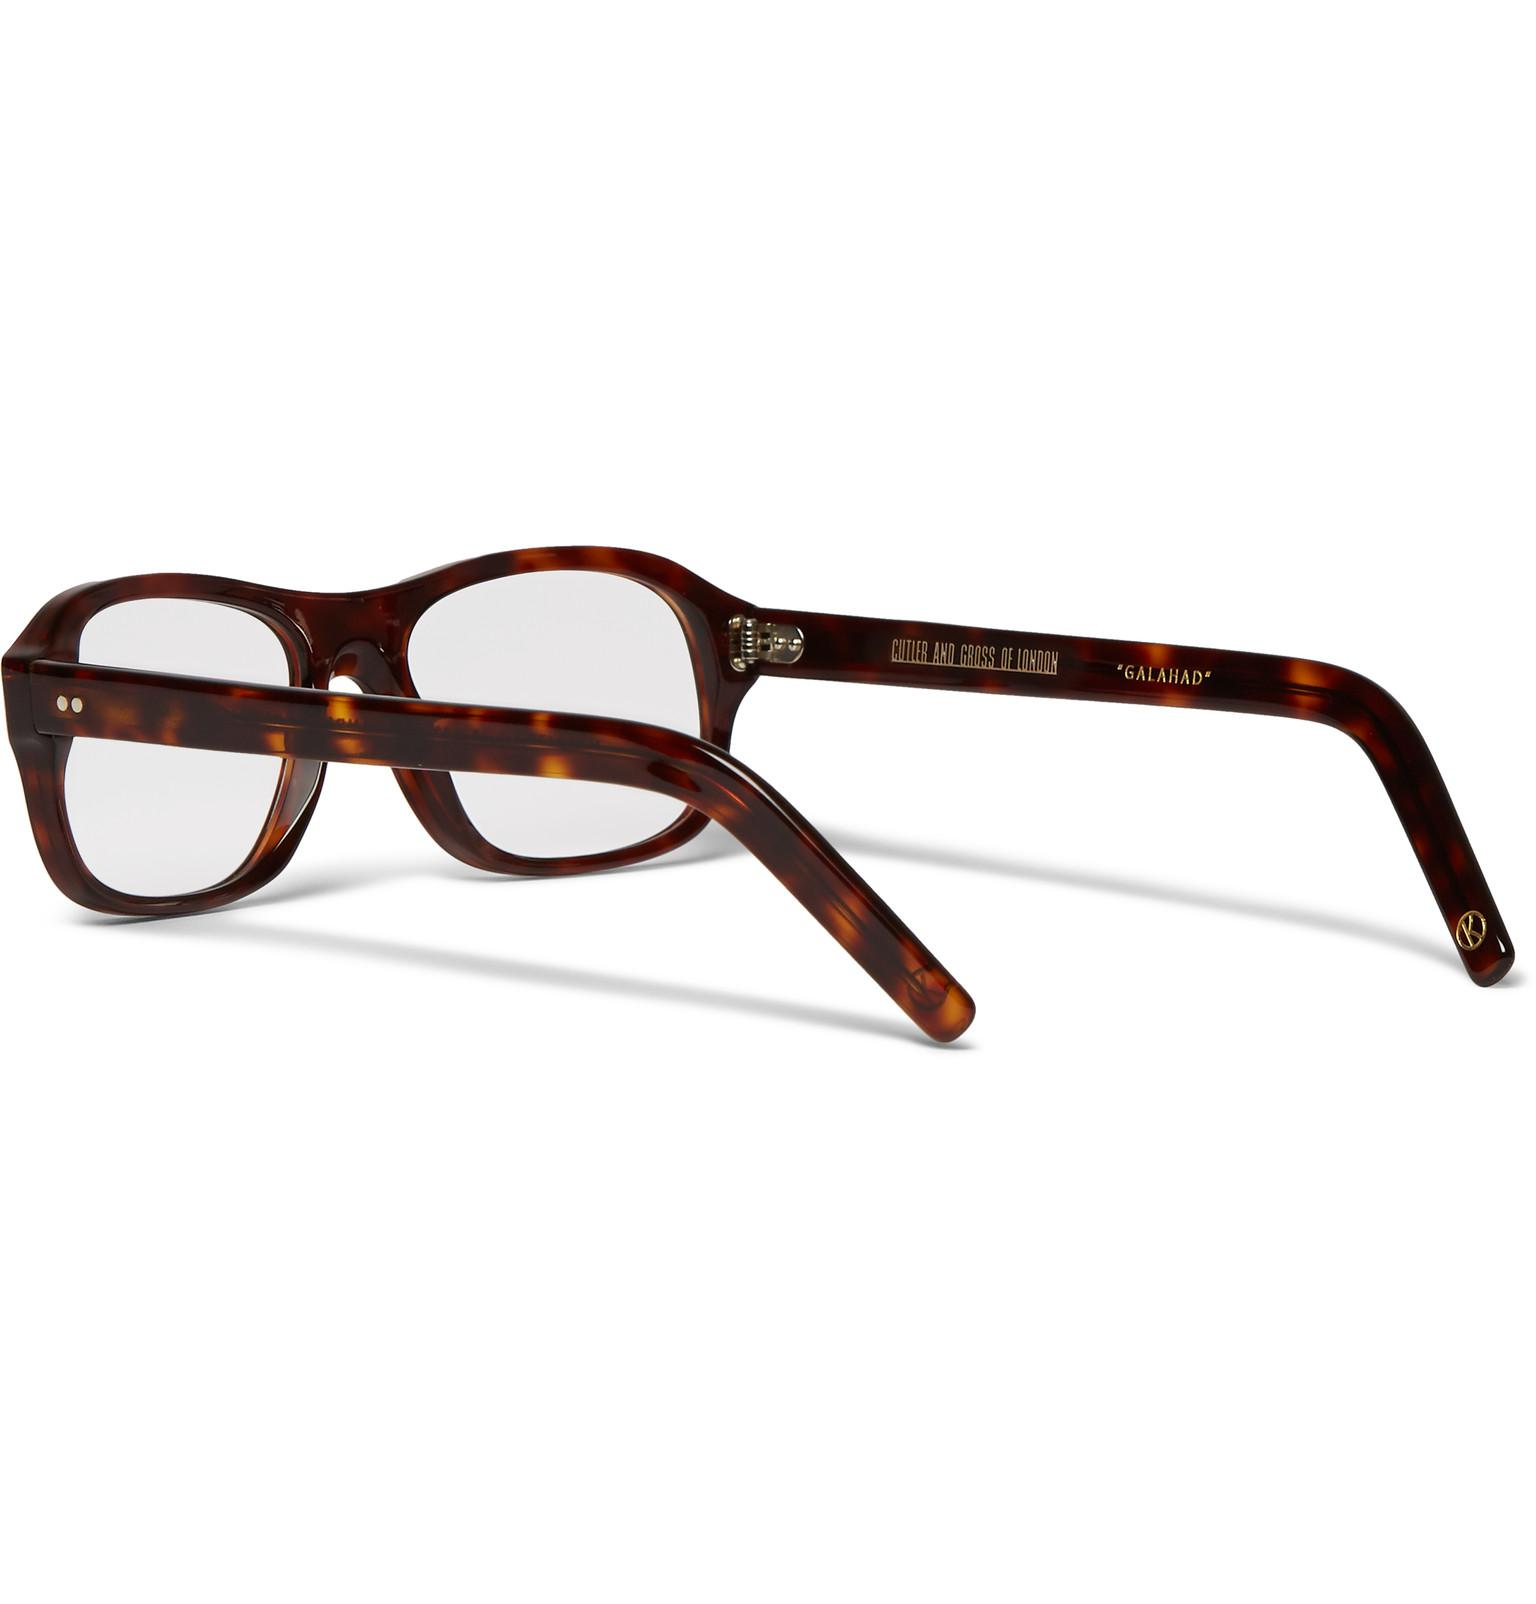 bb242a7ddc Kingsman - Multicolor Cutler And Gross Square-frame Tortoiseshell Acetate  Optical Glasses for Men -. View fullscreen